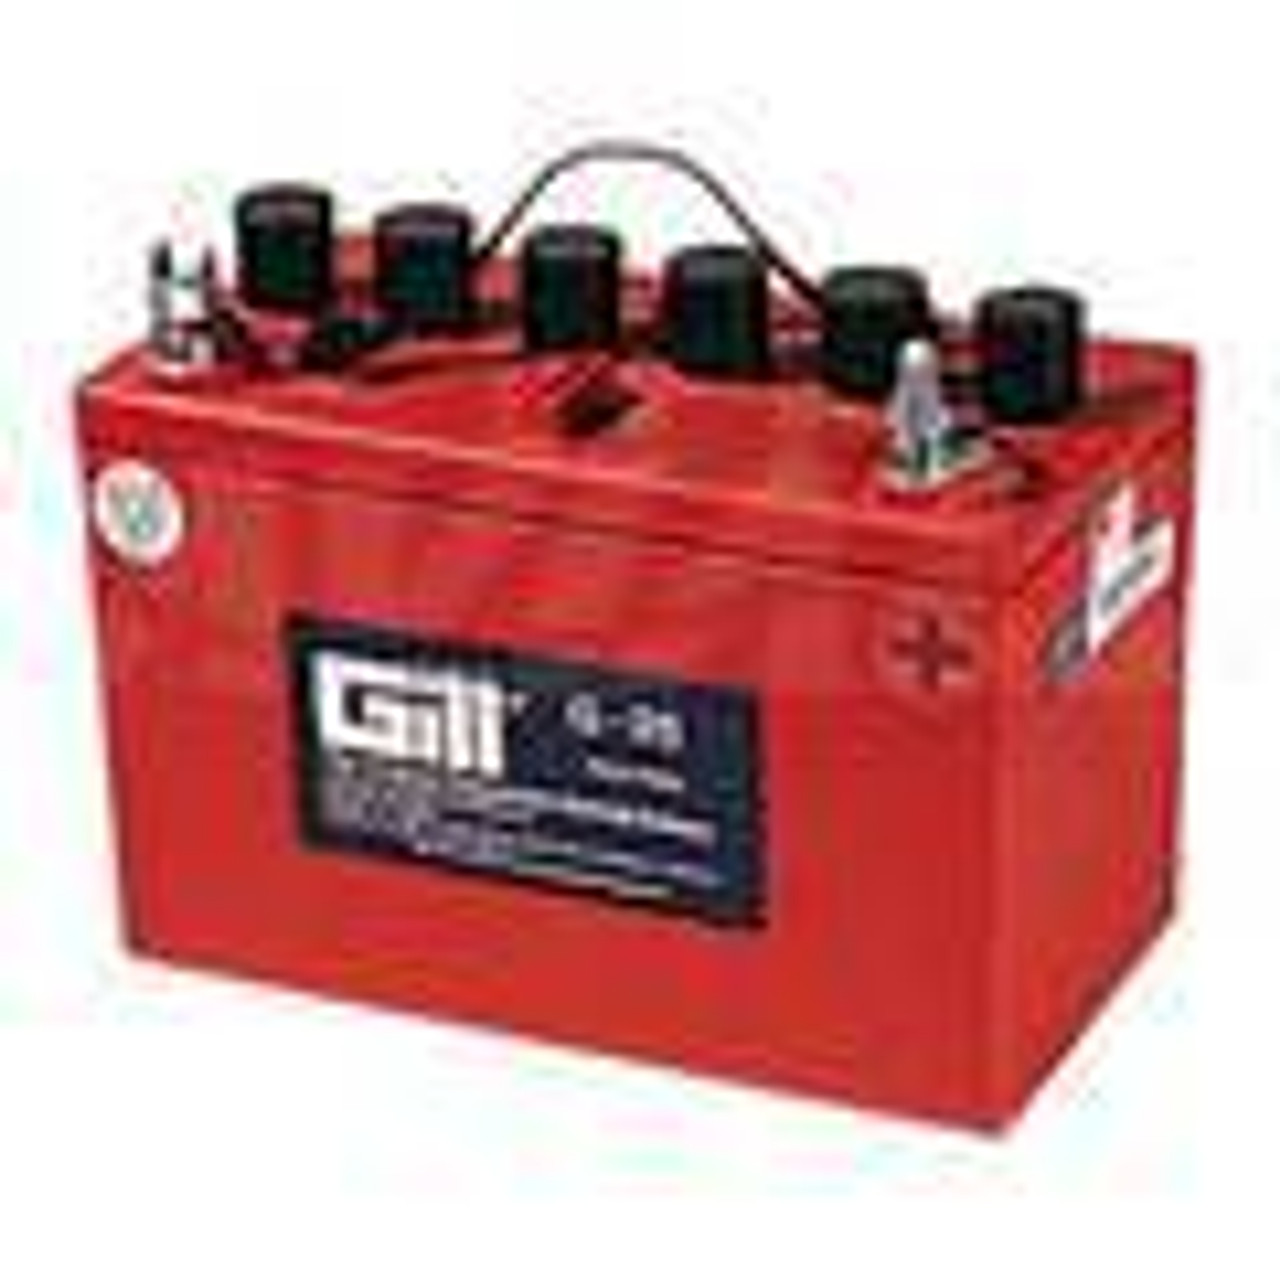 Gill® Batteries are the original equipment aircraft battery. They offer the better performing sealed lead acid battery that is fast becoming the choice in a growing list of airframe manufacturers.